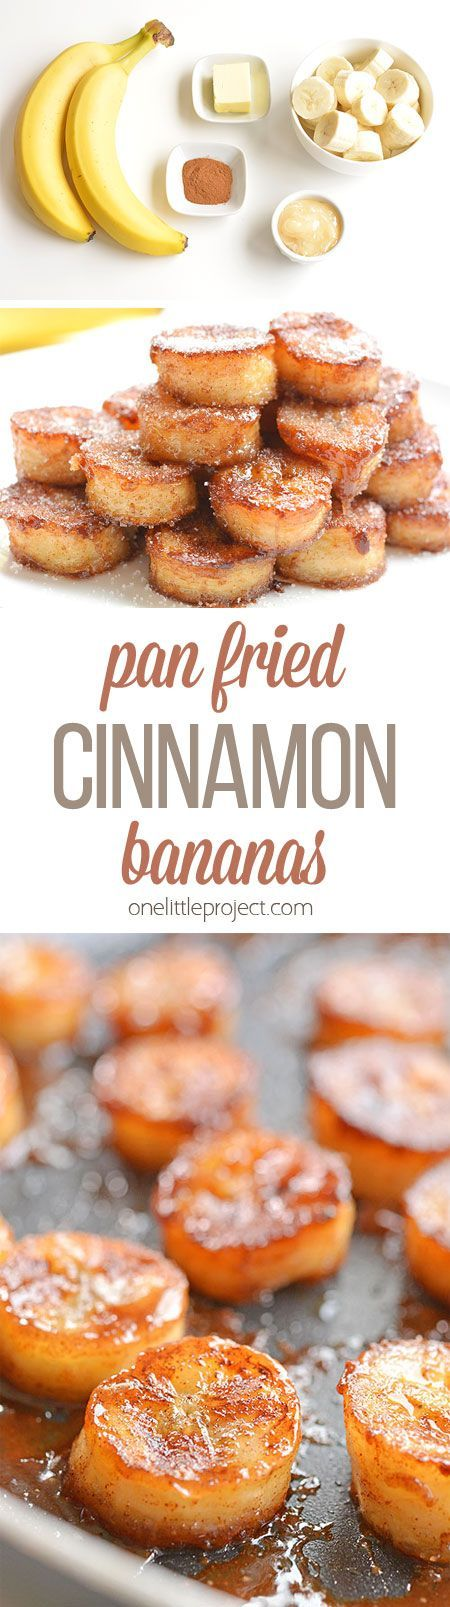 Best 25 soft foods ideas on pinterest soft food meals soft best 25 soft foods ideas on pinterest soft food meals soft foods to eat and recipes with bananas forumfinder Image collections